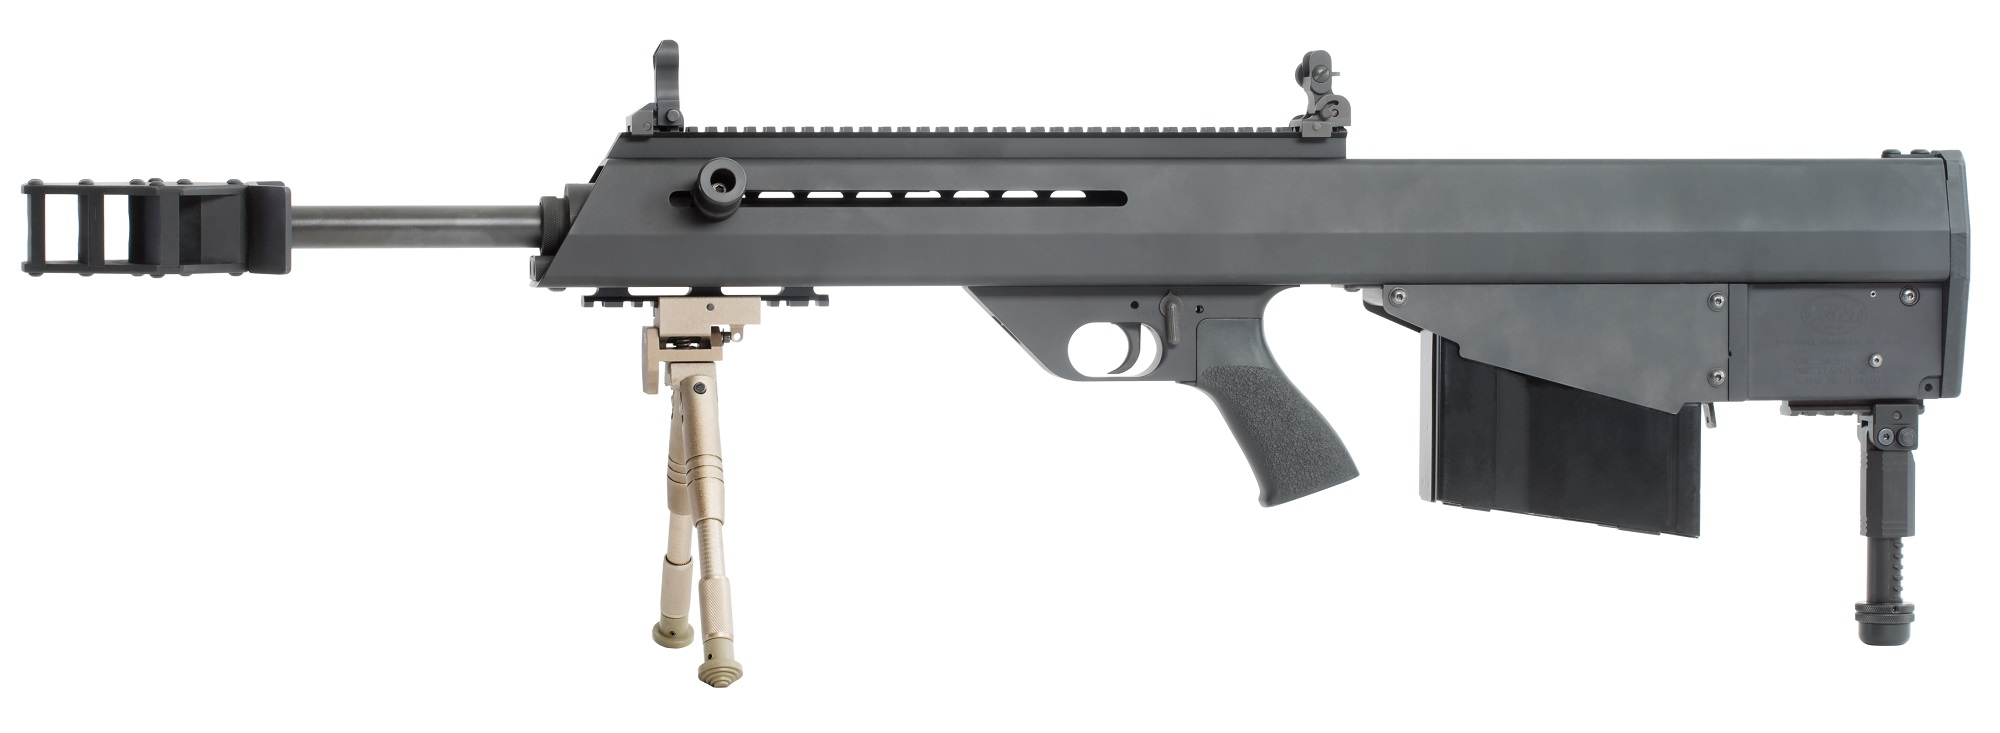 Left side of the Leader 50 A1 bull-pup semi-automatic long-range rifle